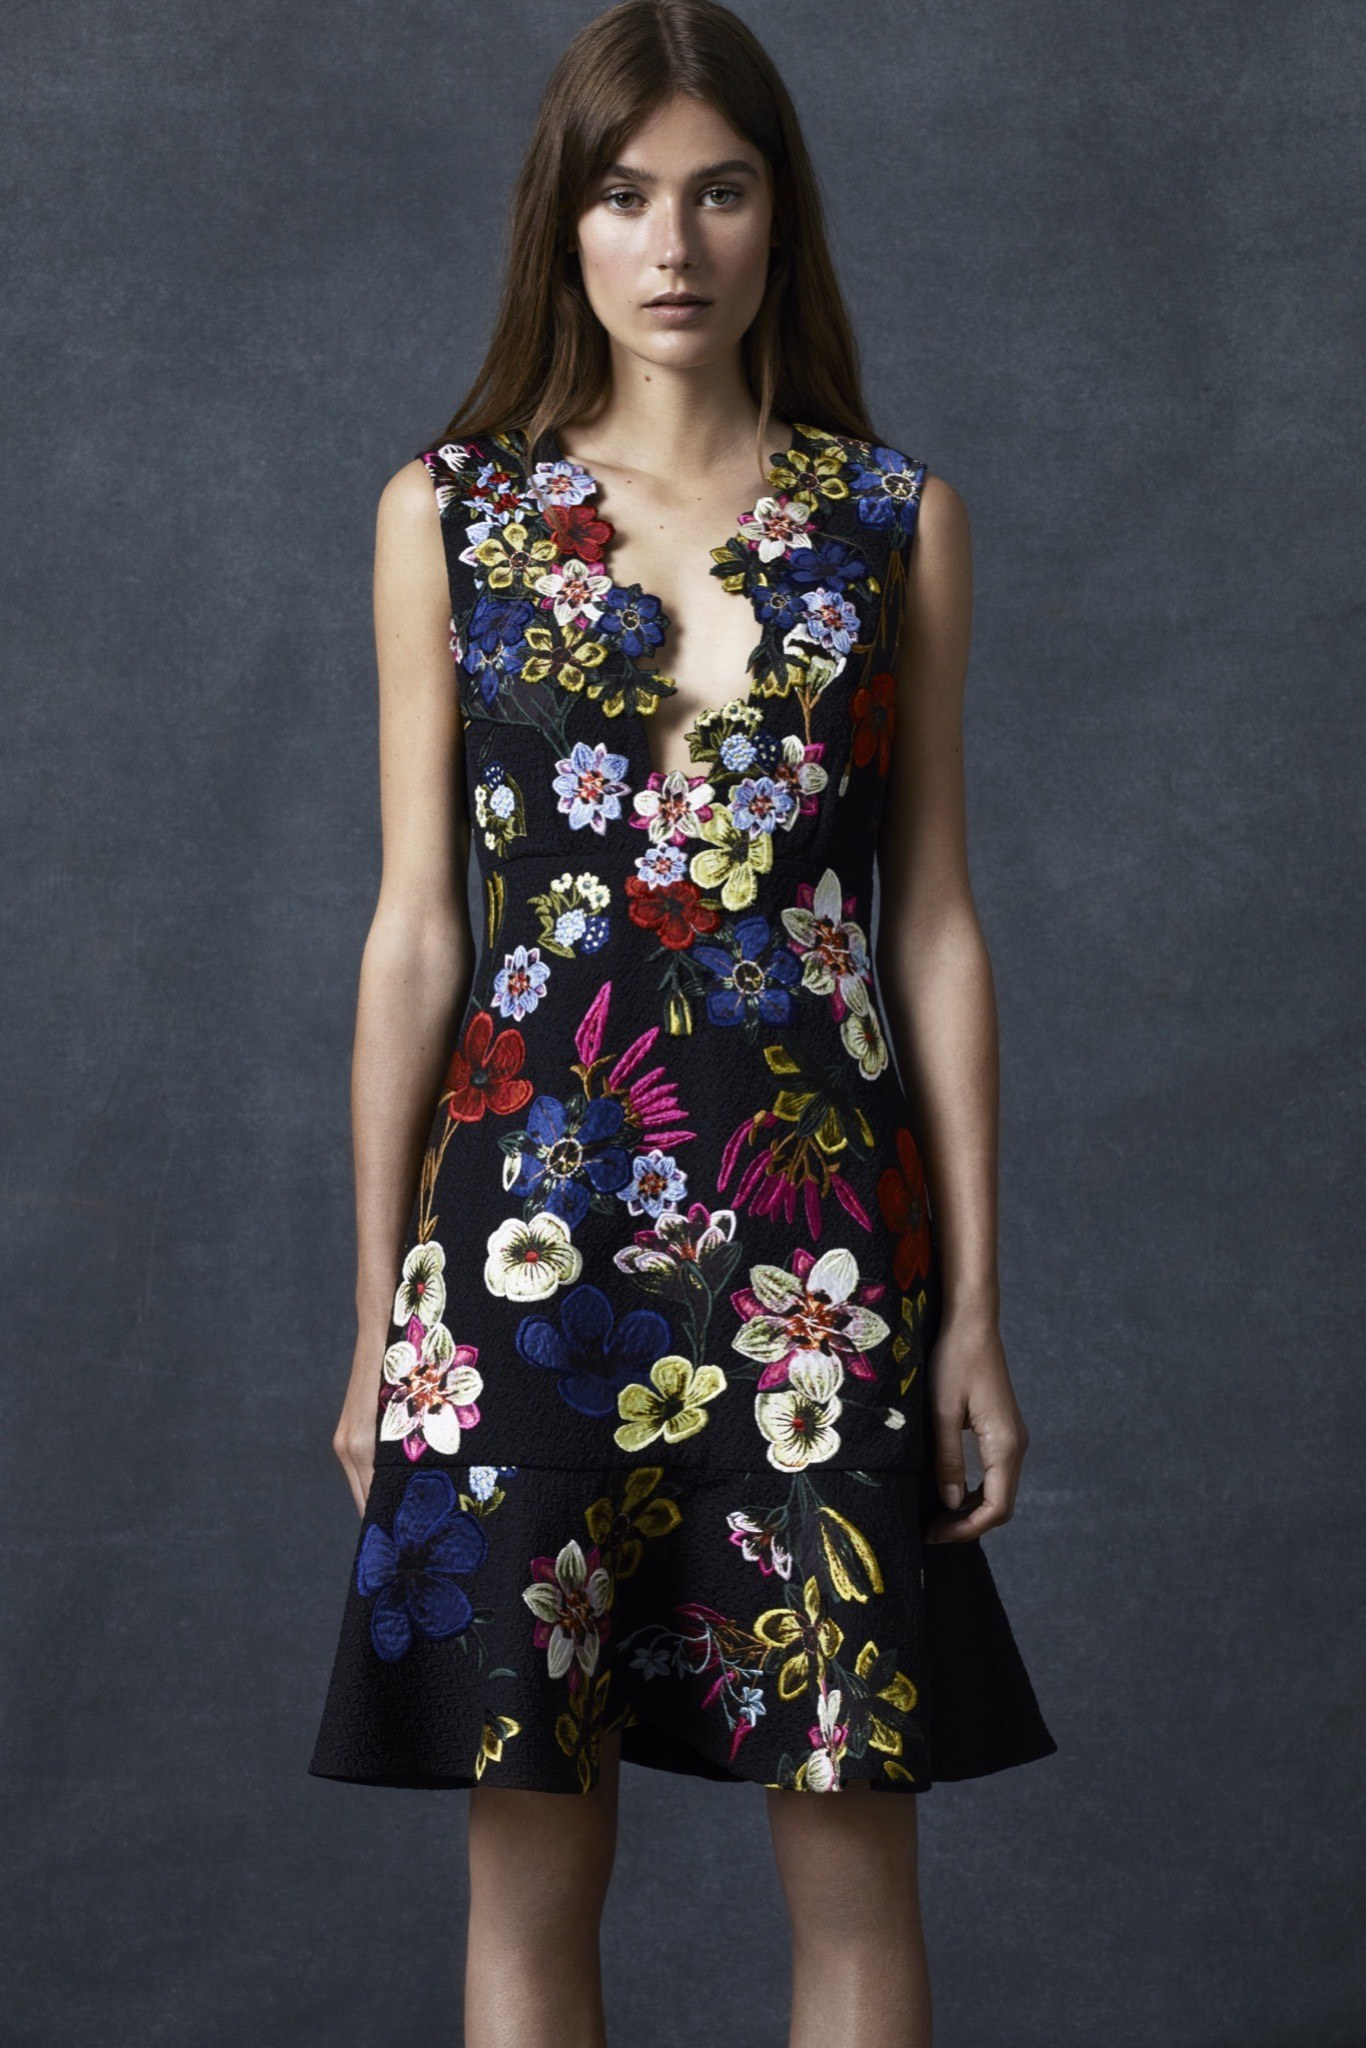 jessica-chastain-in-erdem-crimson-peak-new-york-promo-tour